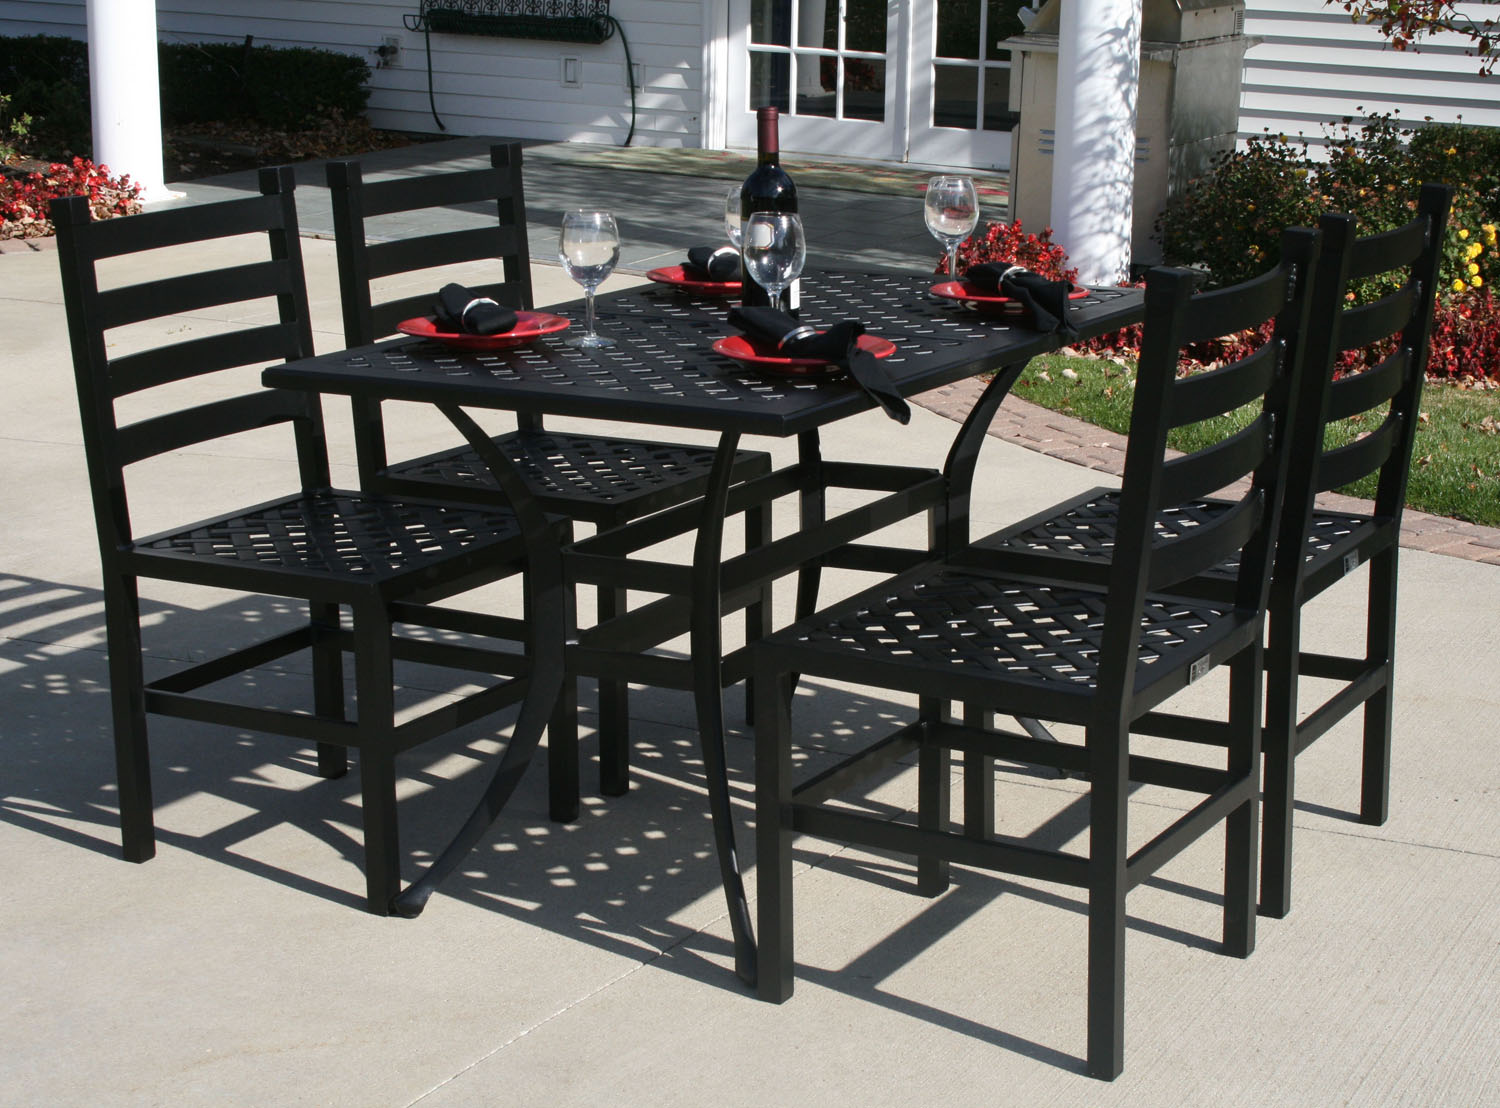 Luxury 4 Person All Welded Cast Aluminum Patio Furniture Dining Set